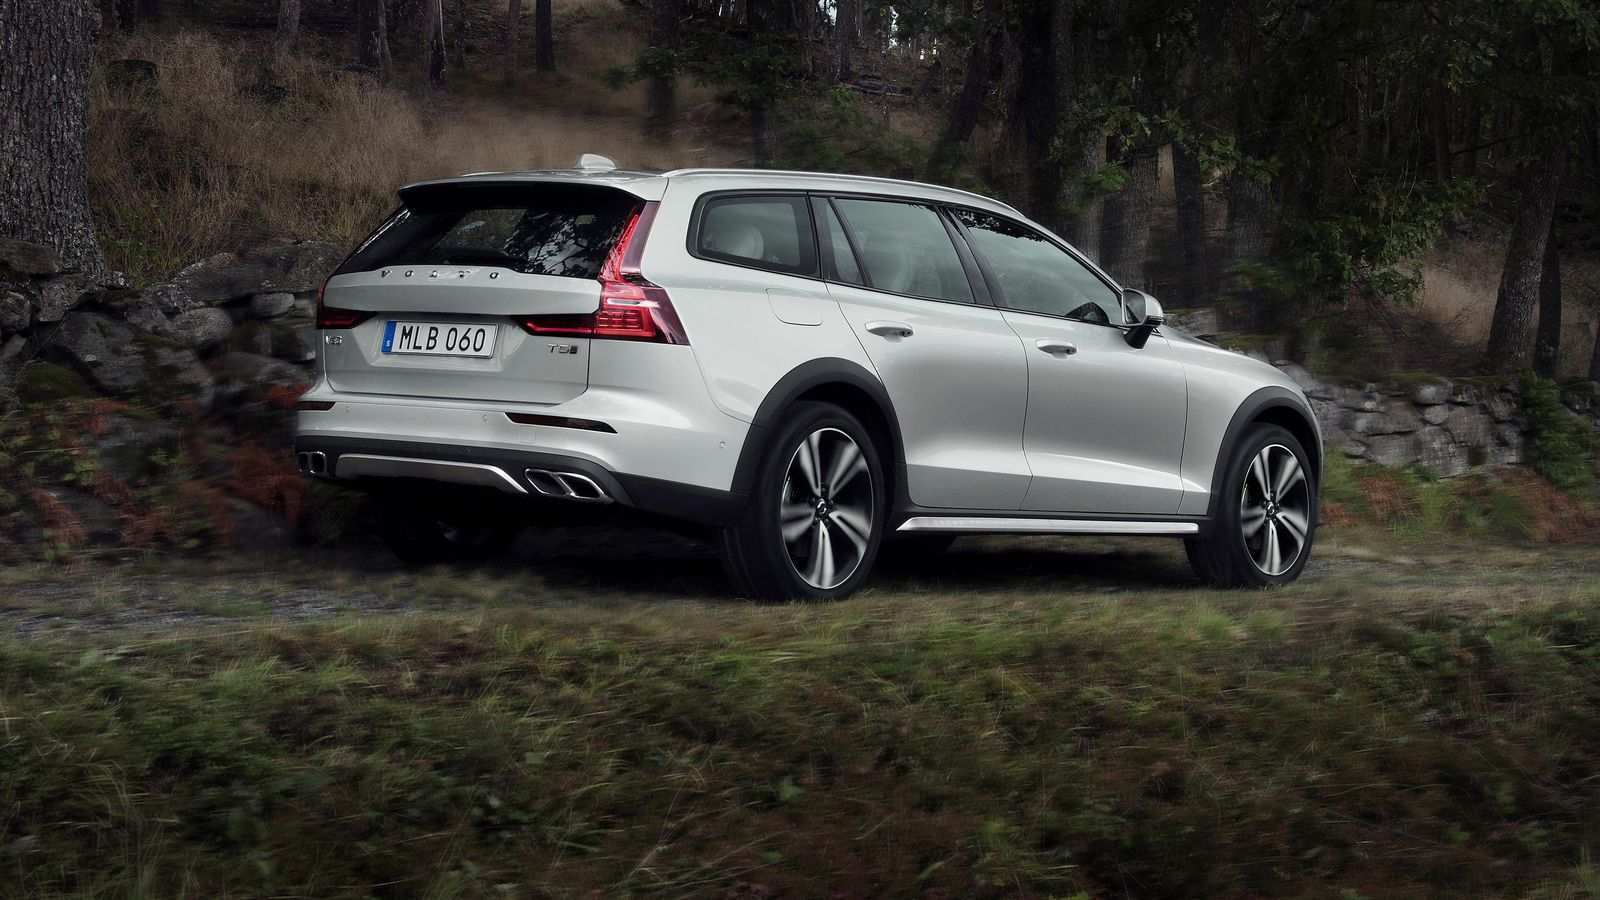 66 The Best 2020 Volvo V90 Wallpaper